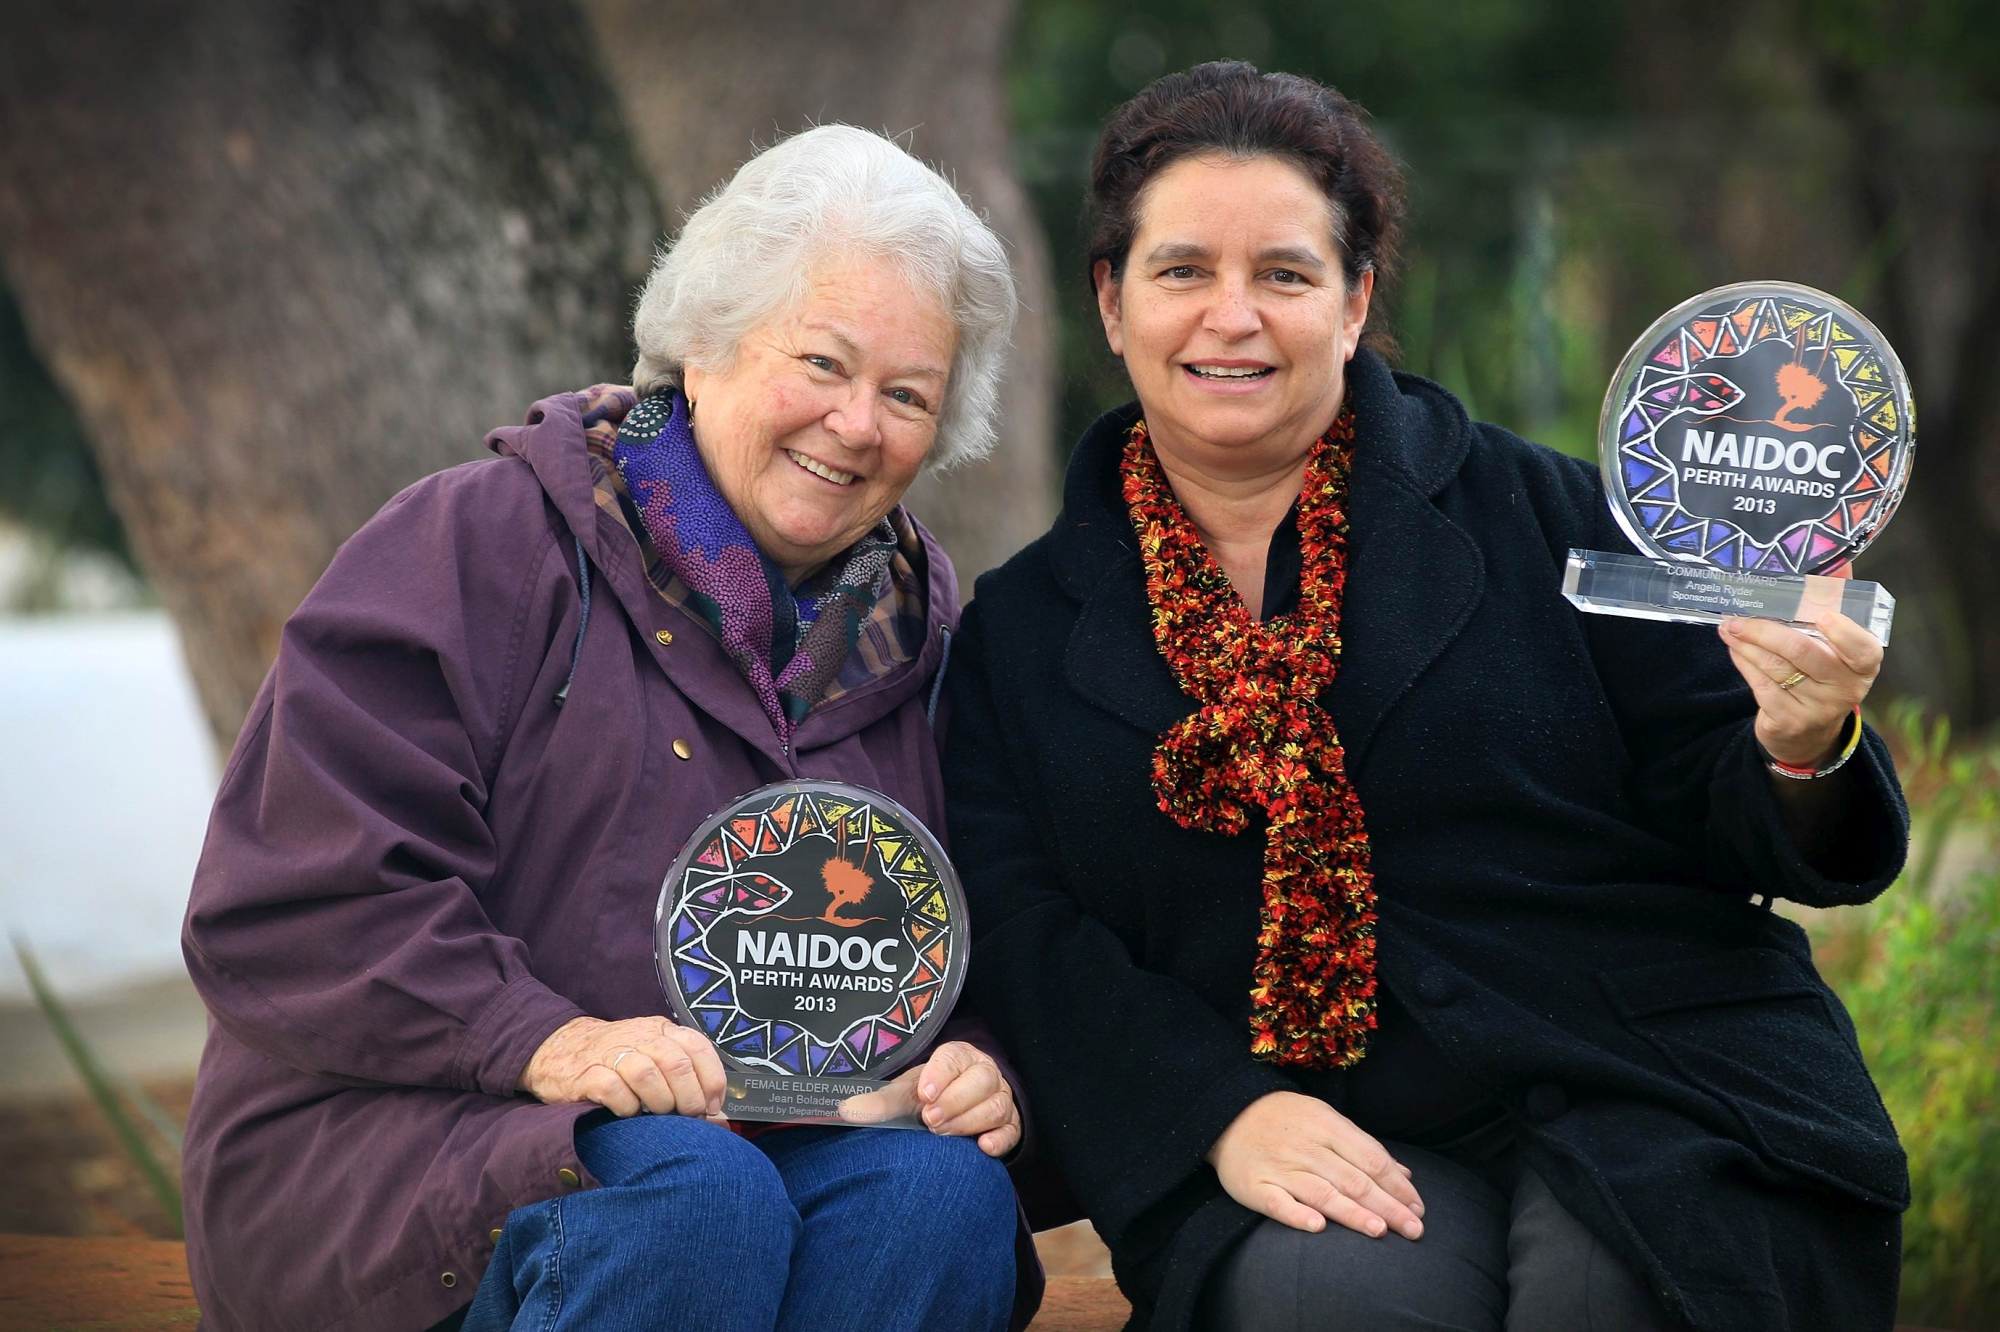 Jean Boladeras and Angela Ryder with their Naidoc Perth 2013 awards. Picture: Marcelo Palacios www.communitypix.com.au d404324